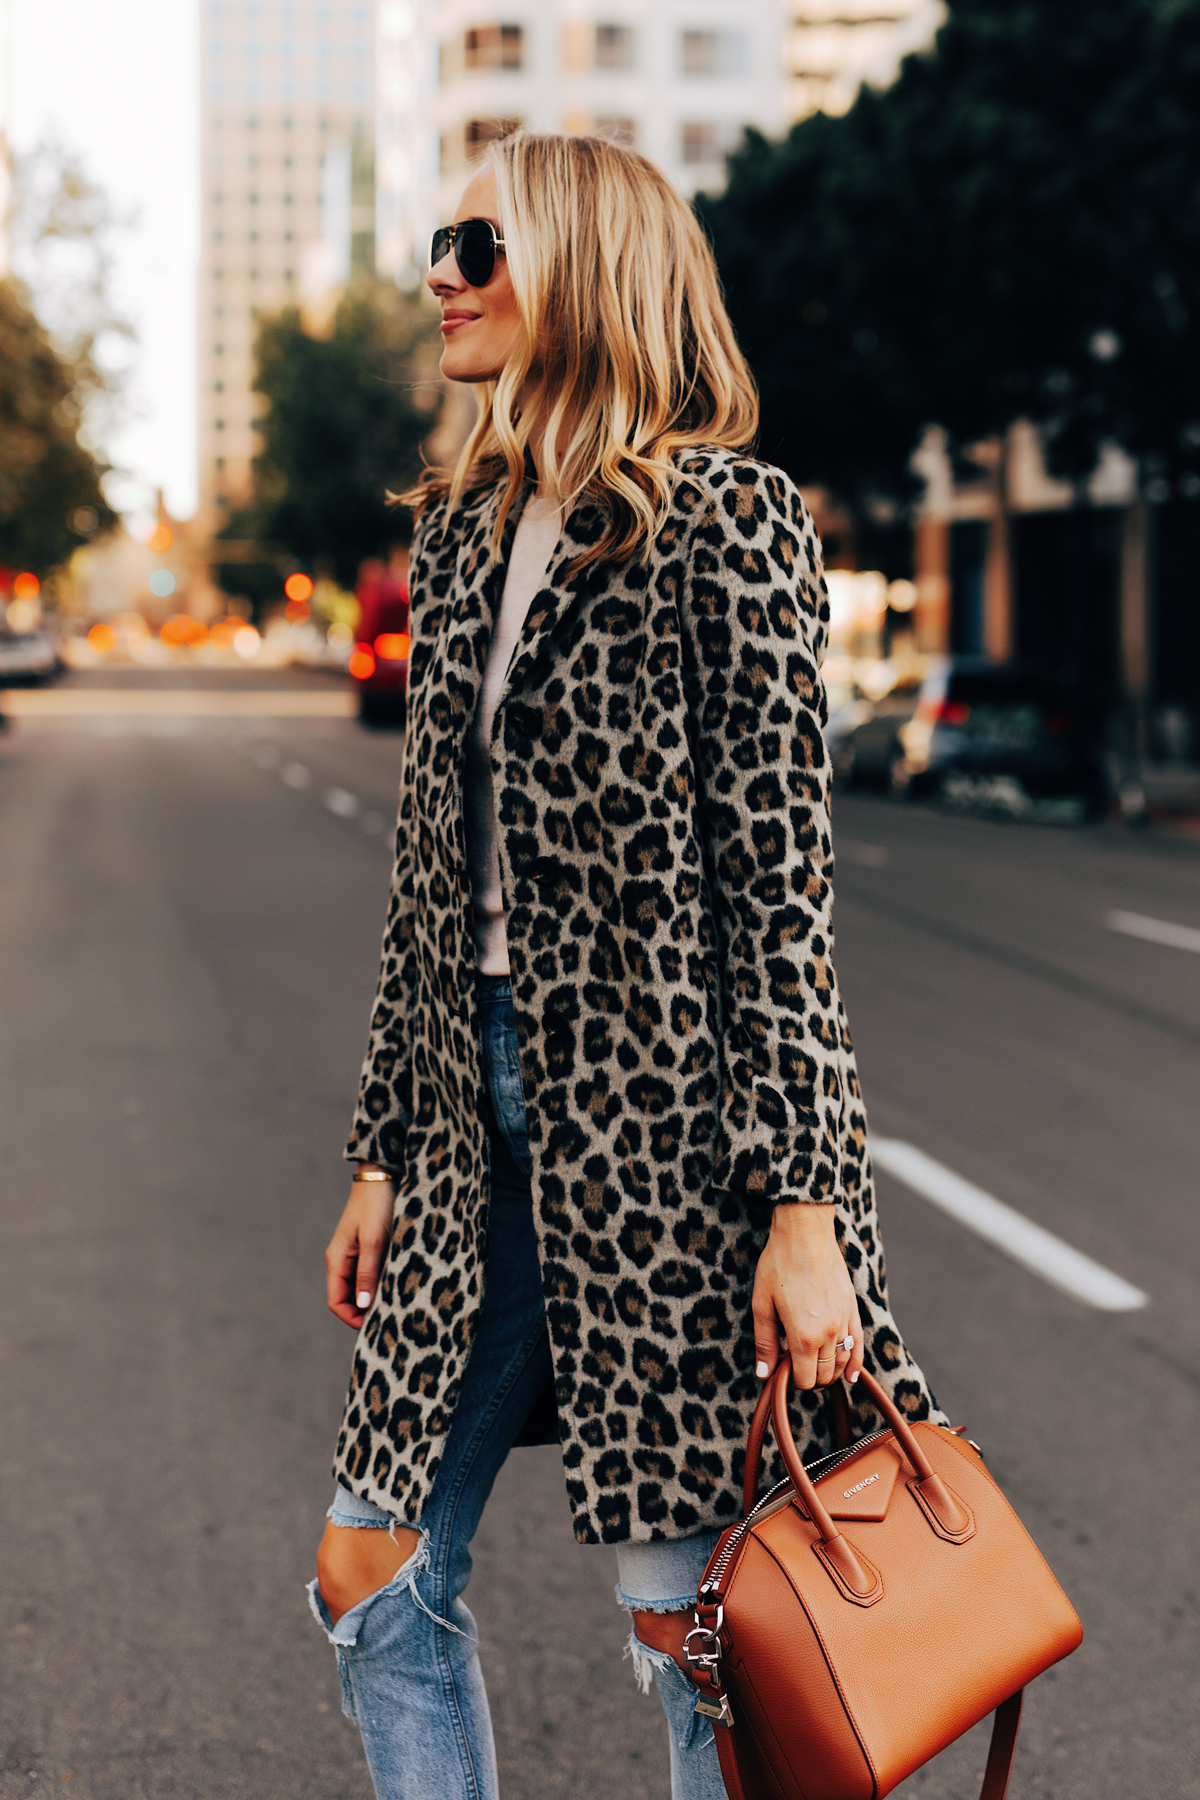 Fashion Jackson Wearing Ann Taylor Leopard Coat Givenchy Antigona Cognac Satchel Ripped Jeans